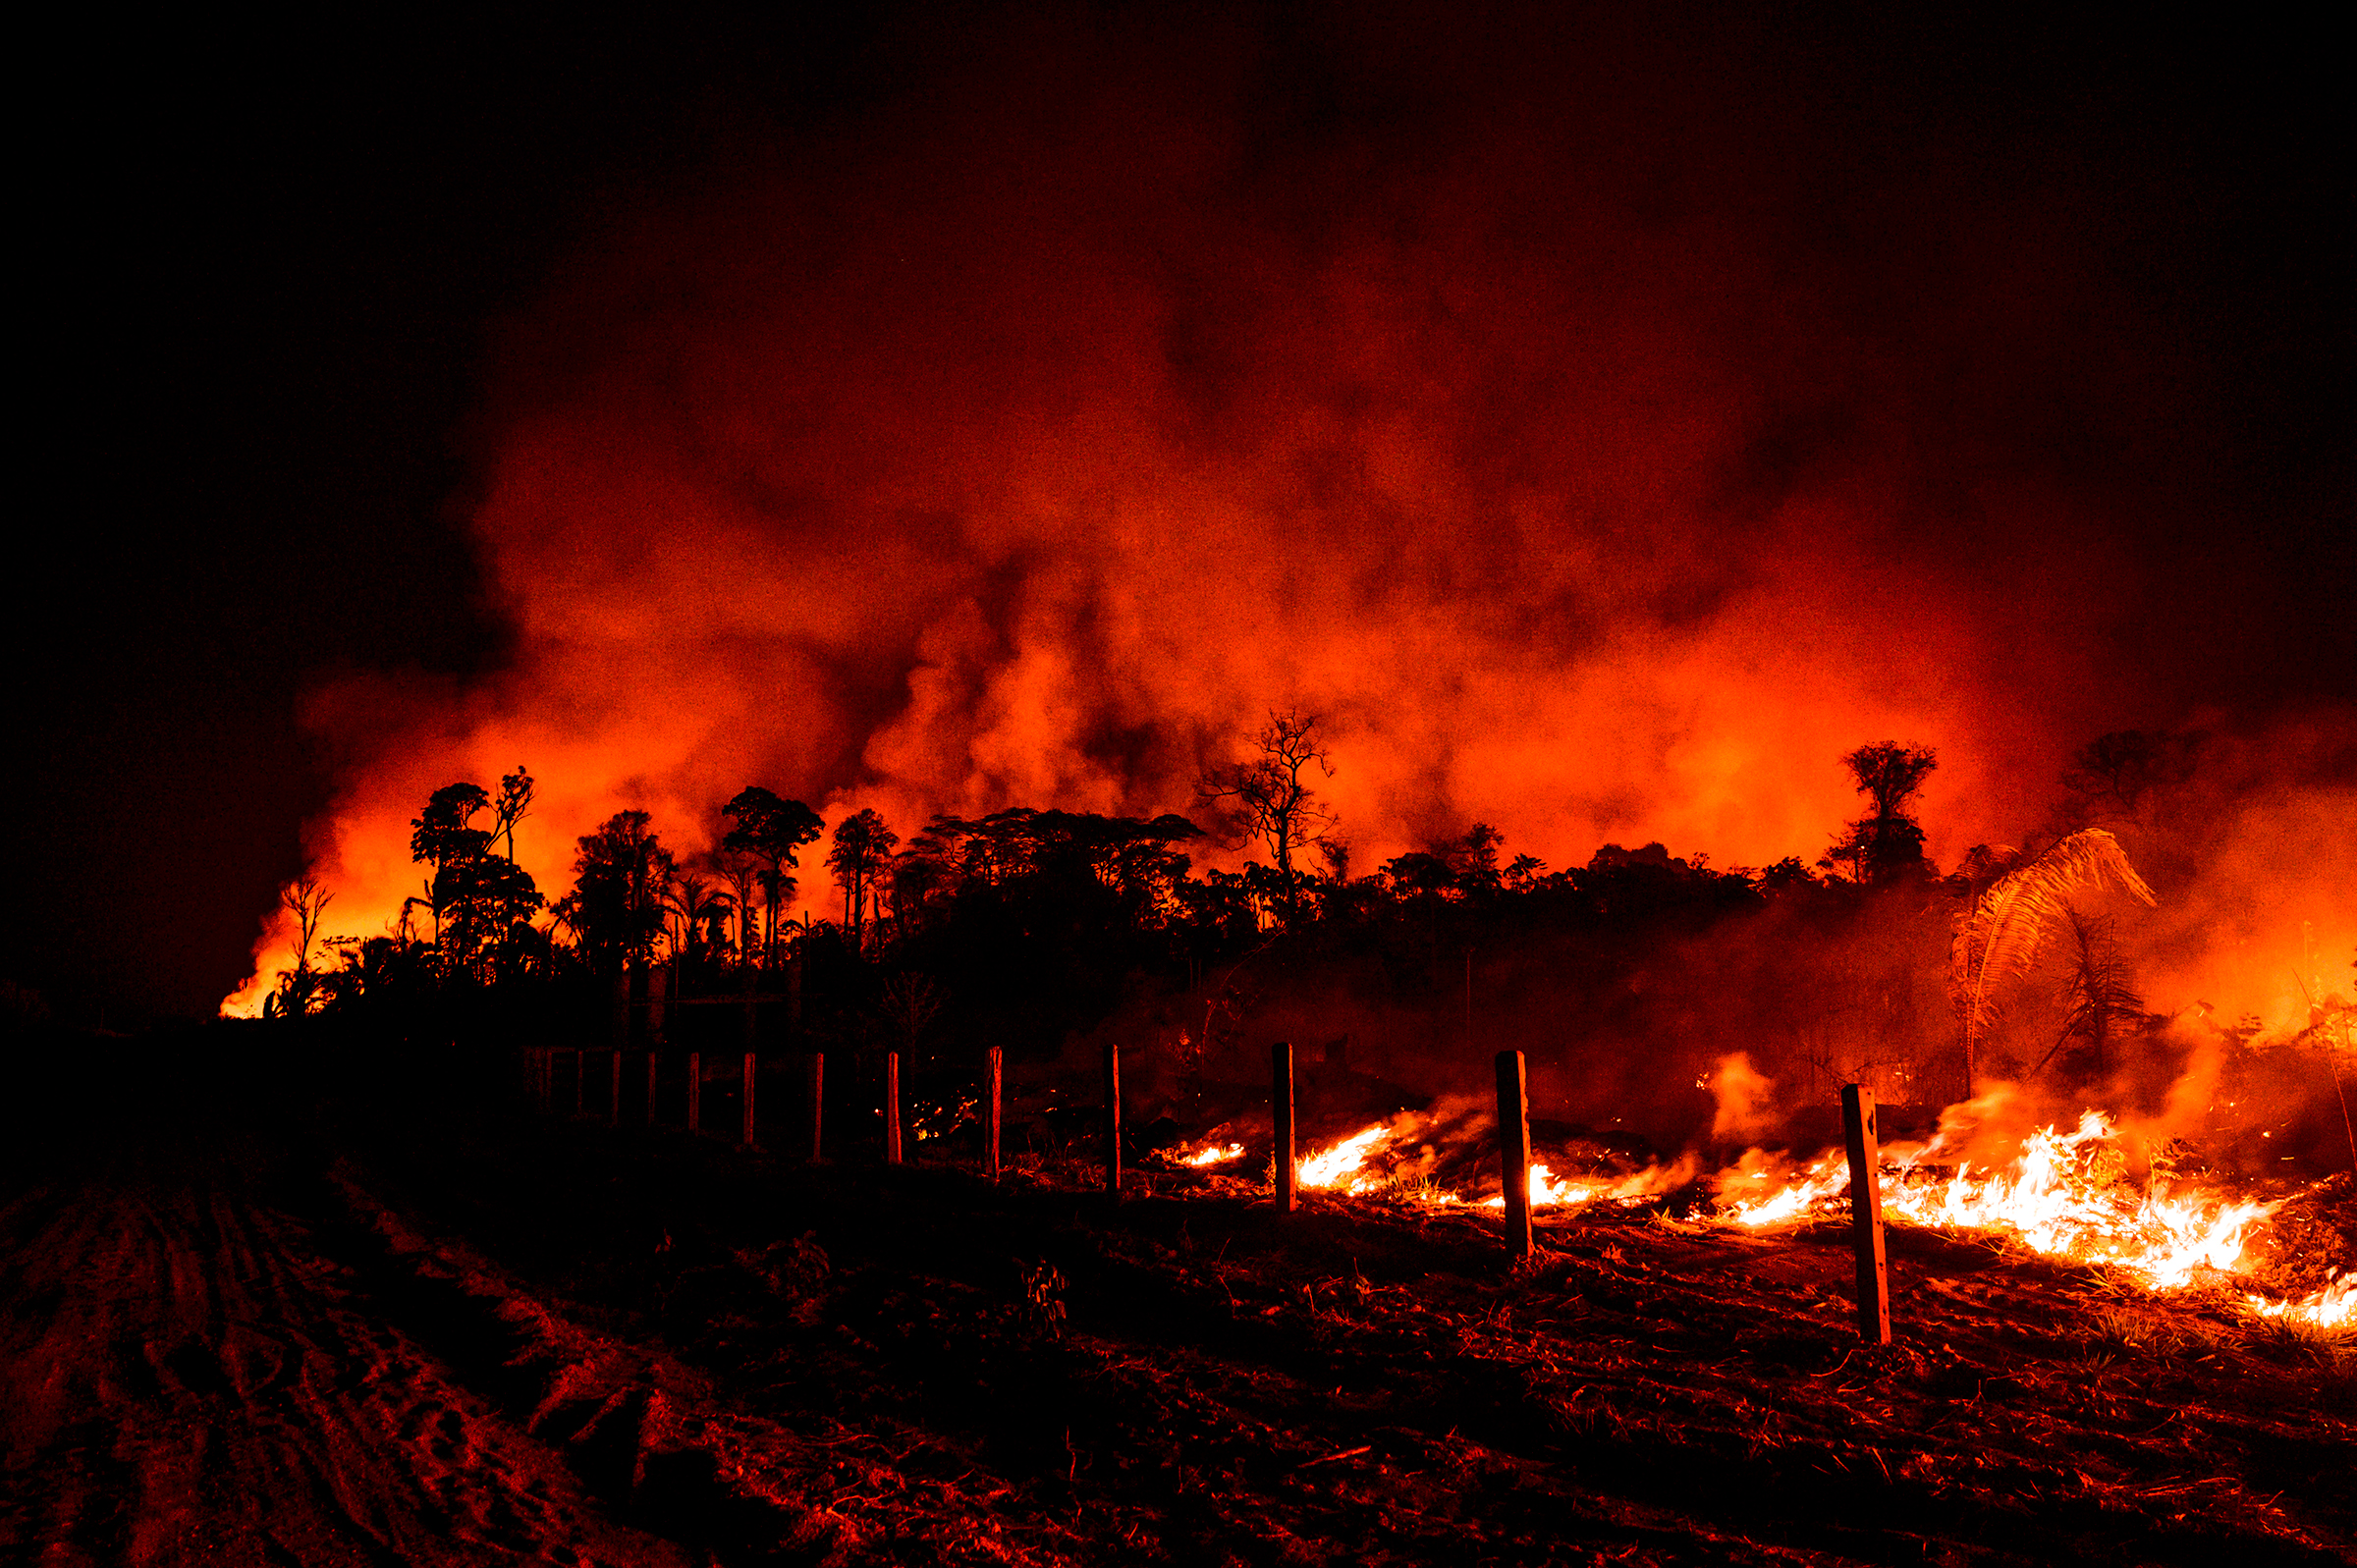 Fence posts are illuminated by nearby flames in the region of Vila Nova Samuel, near Brazil's Jacundá National Forest, on Aug. 27.